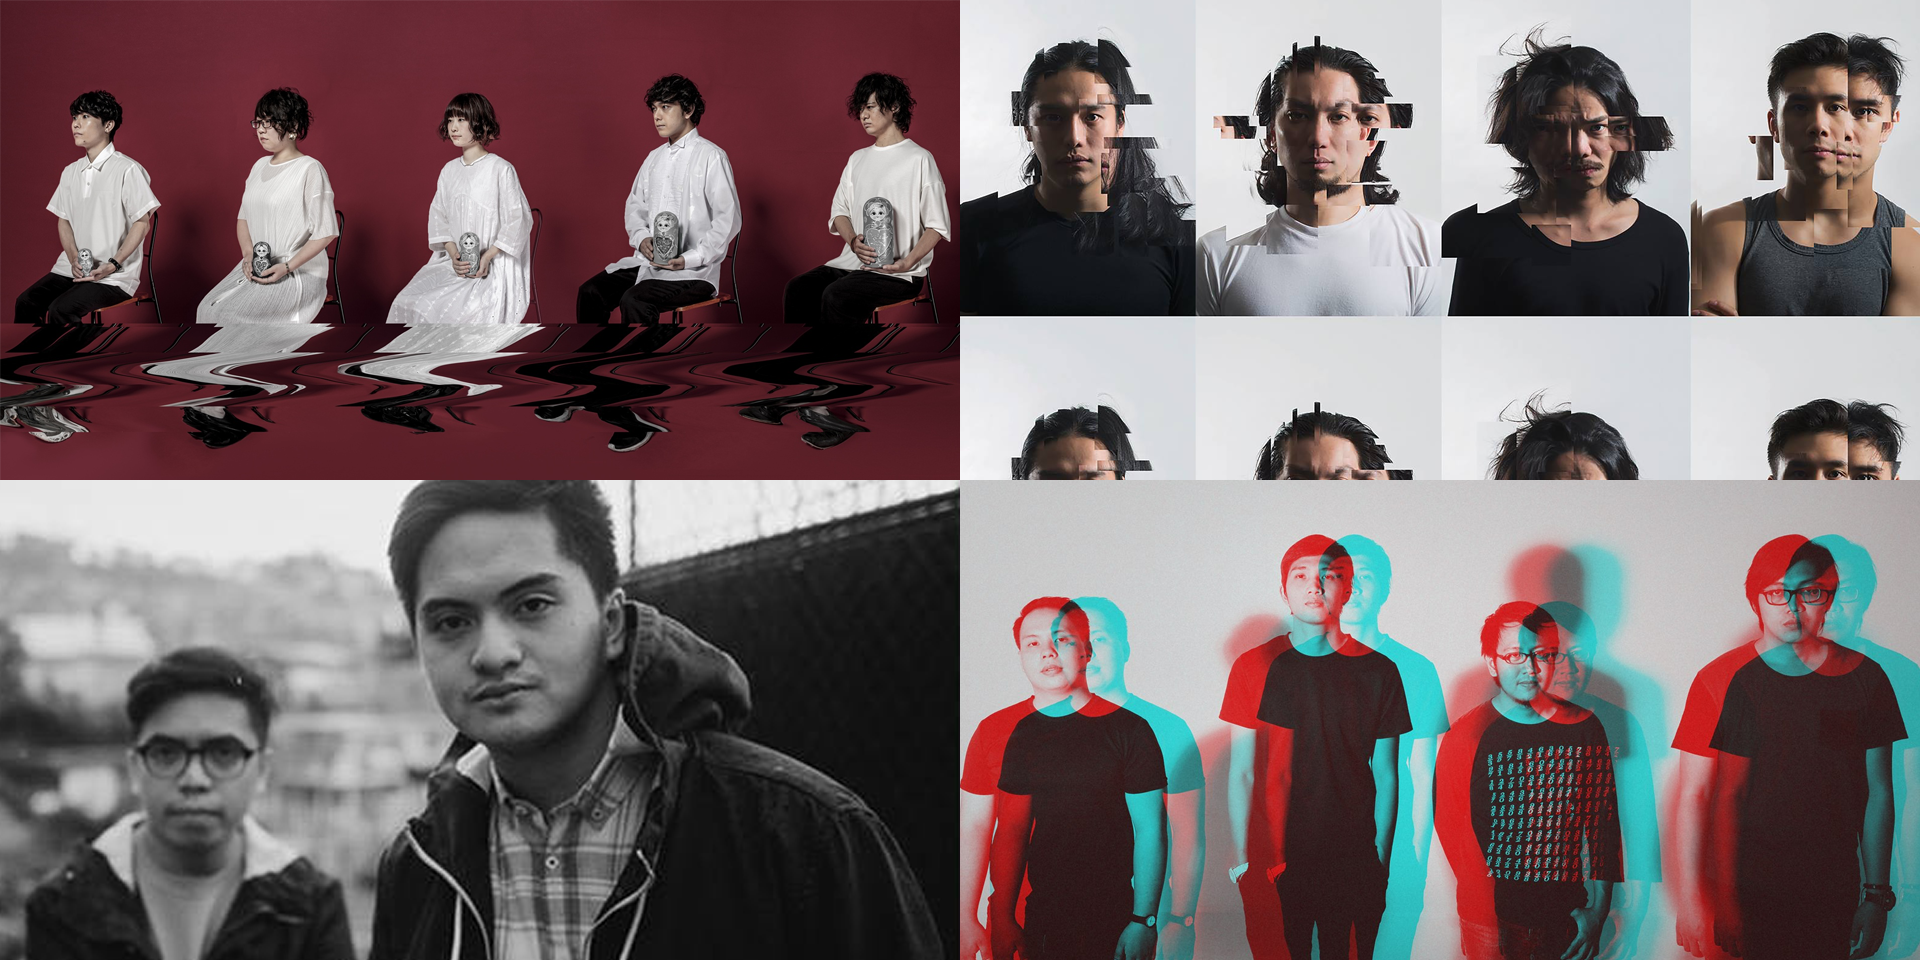 JYOCHO, tfvsjs, Degs and Gabba, tide/edit, and more to perform at FIERE 2019